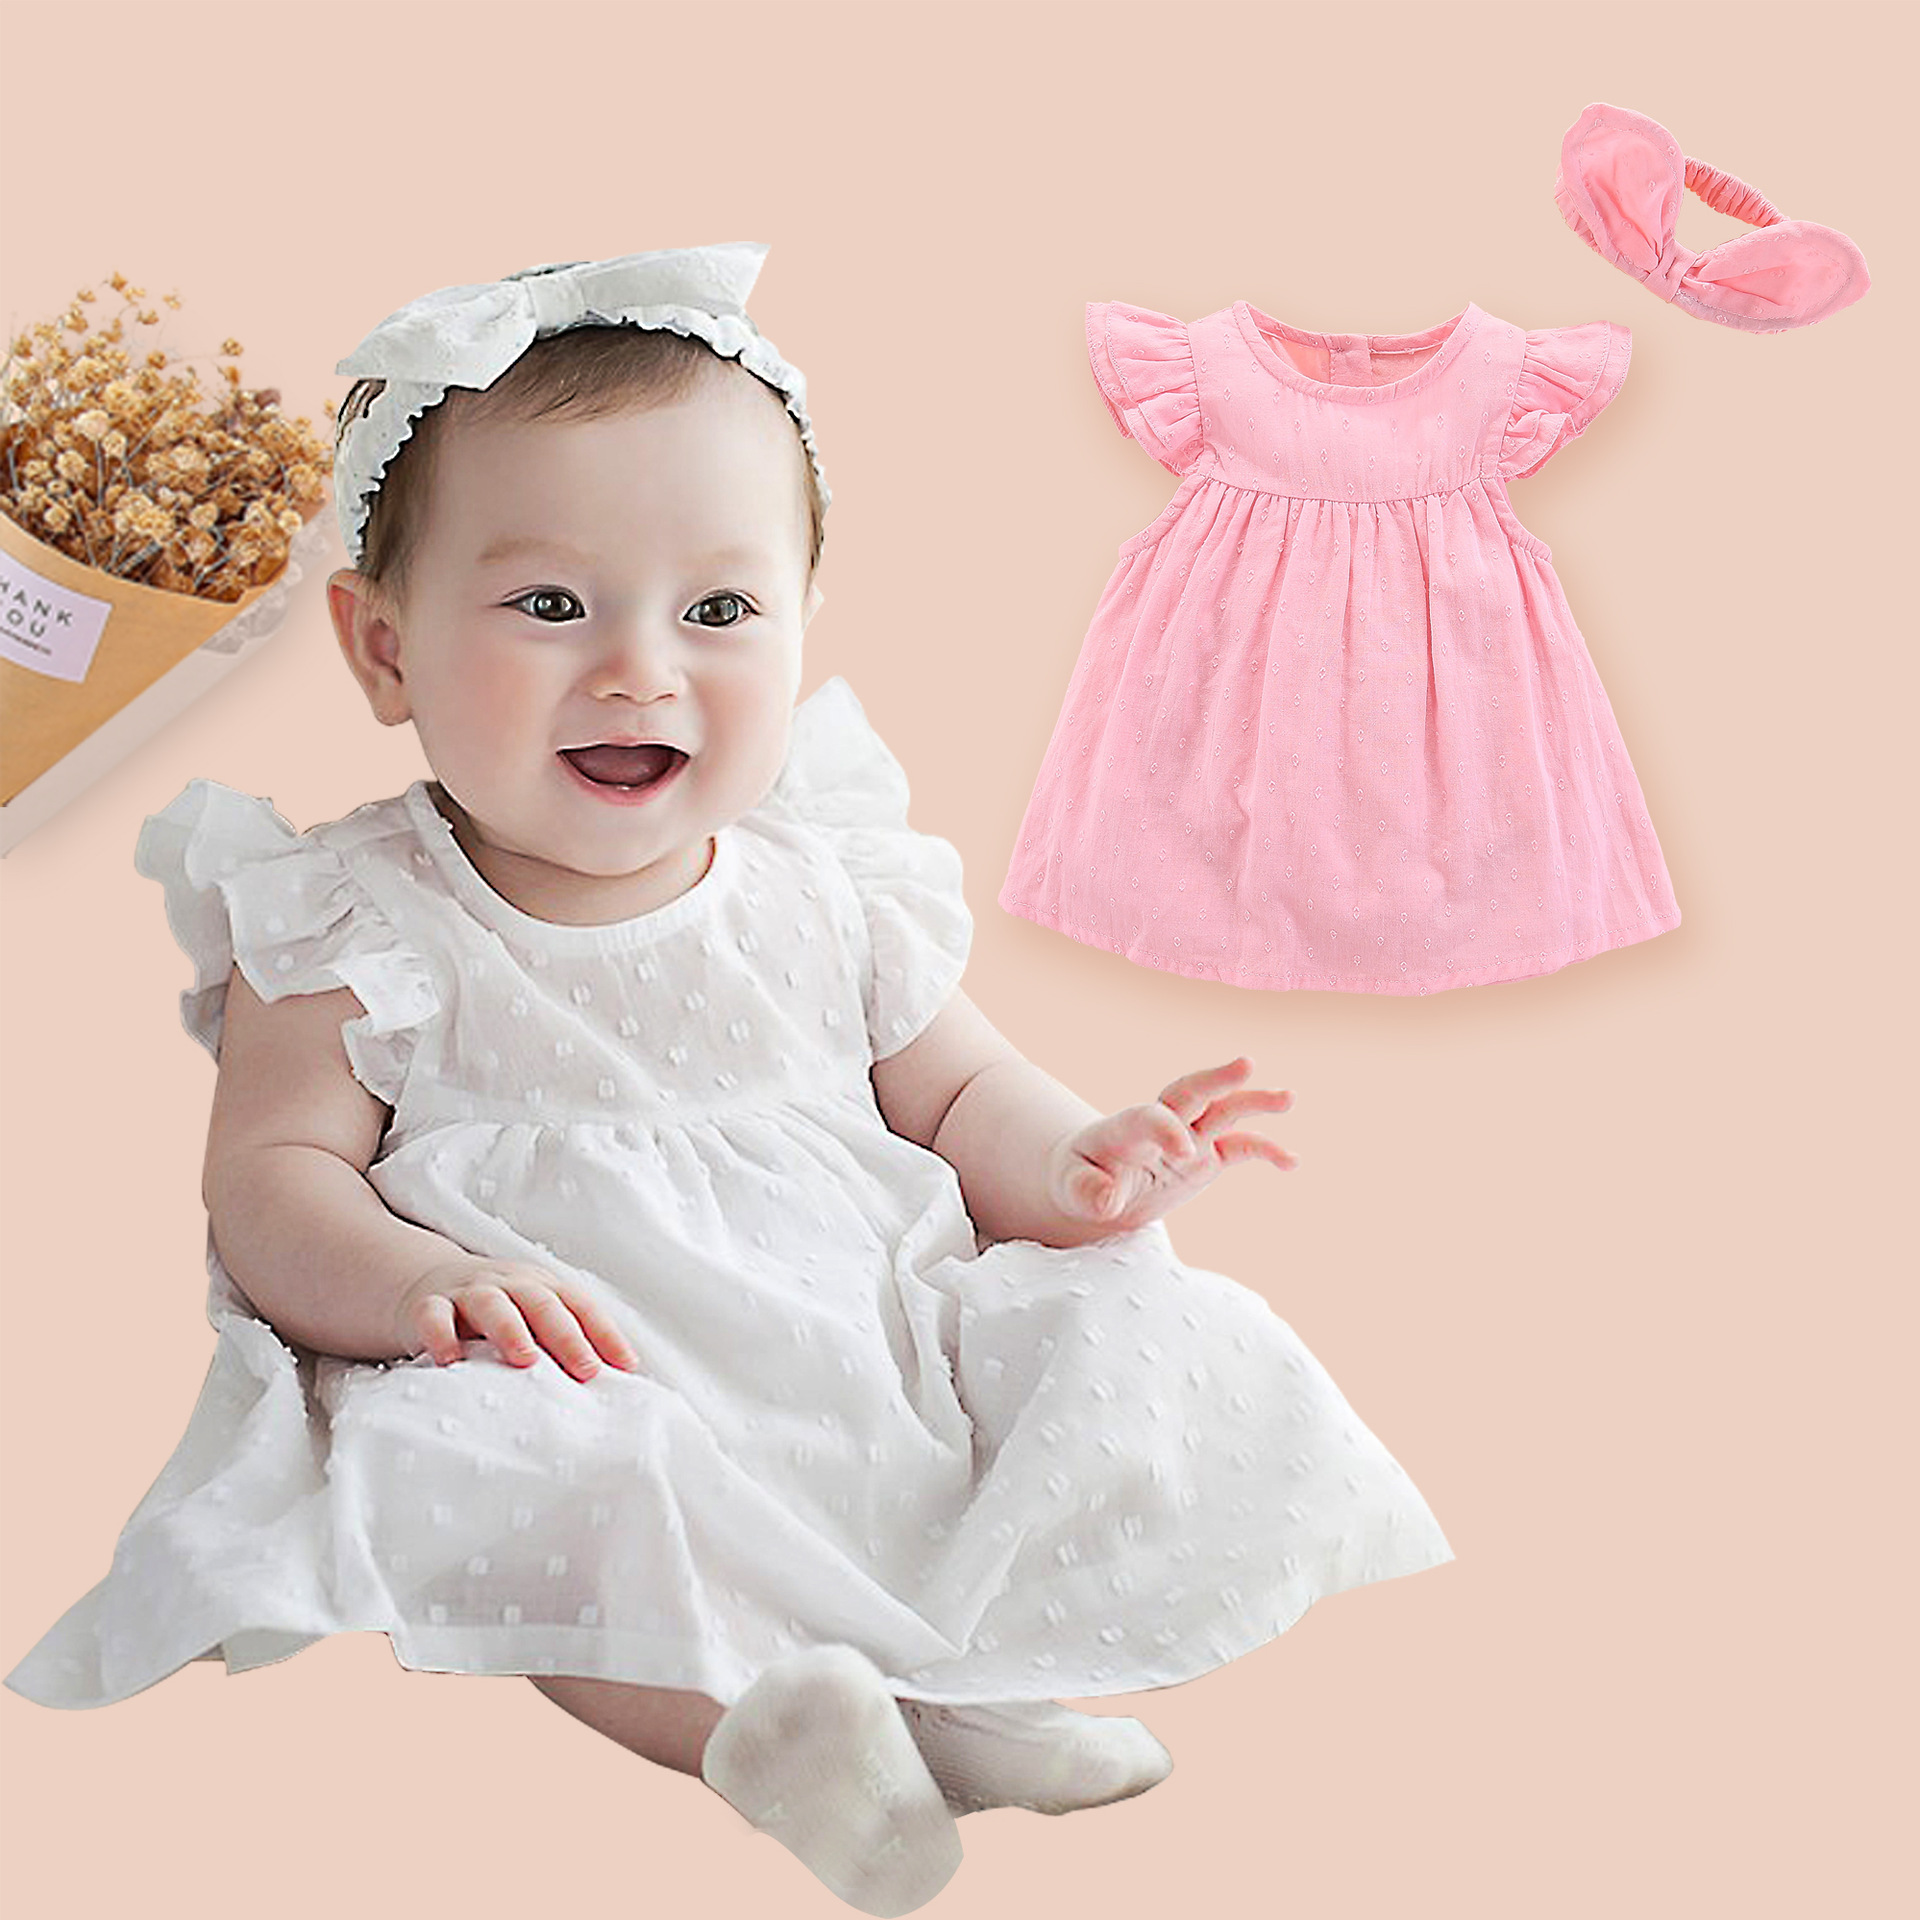 Dress Baby-Girl-Dresses Newborn Bebe Princess Summer Party White Cotton 0-3-Months  title=